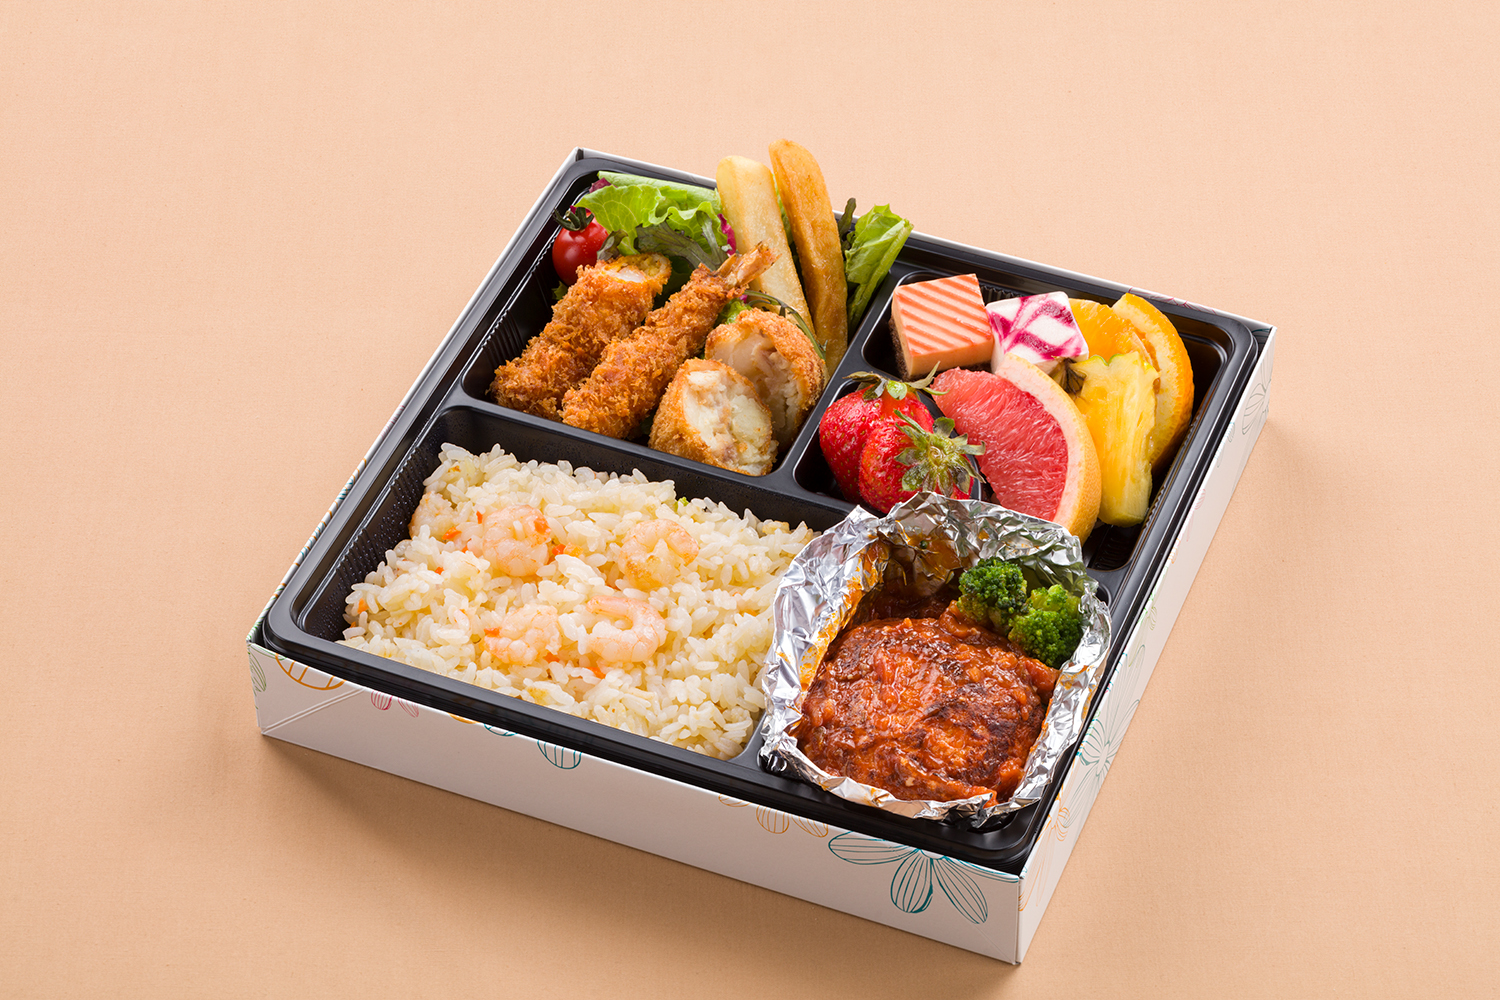 Boxed meal 洋食弁当